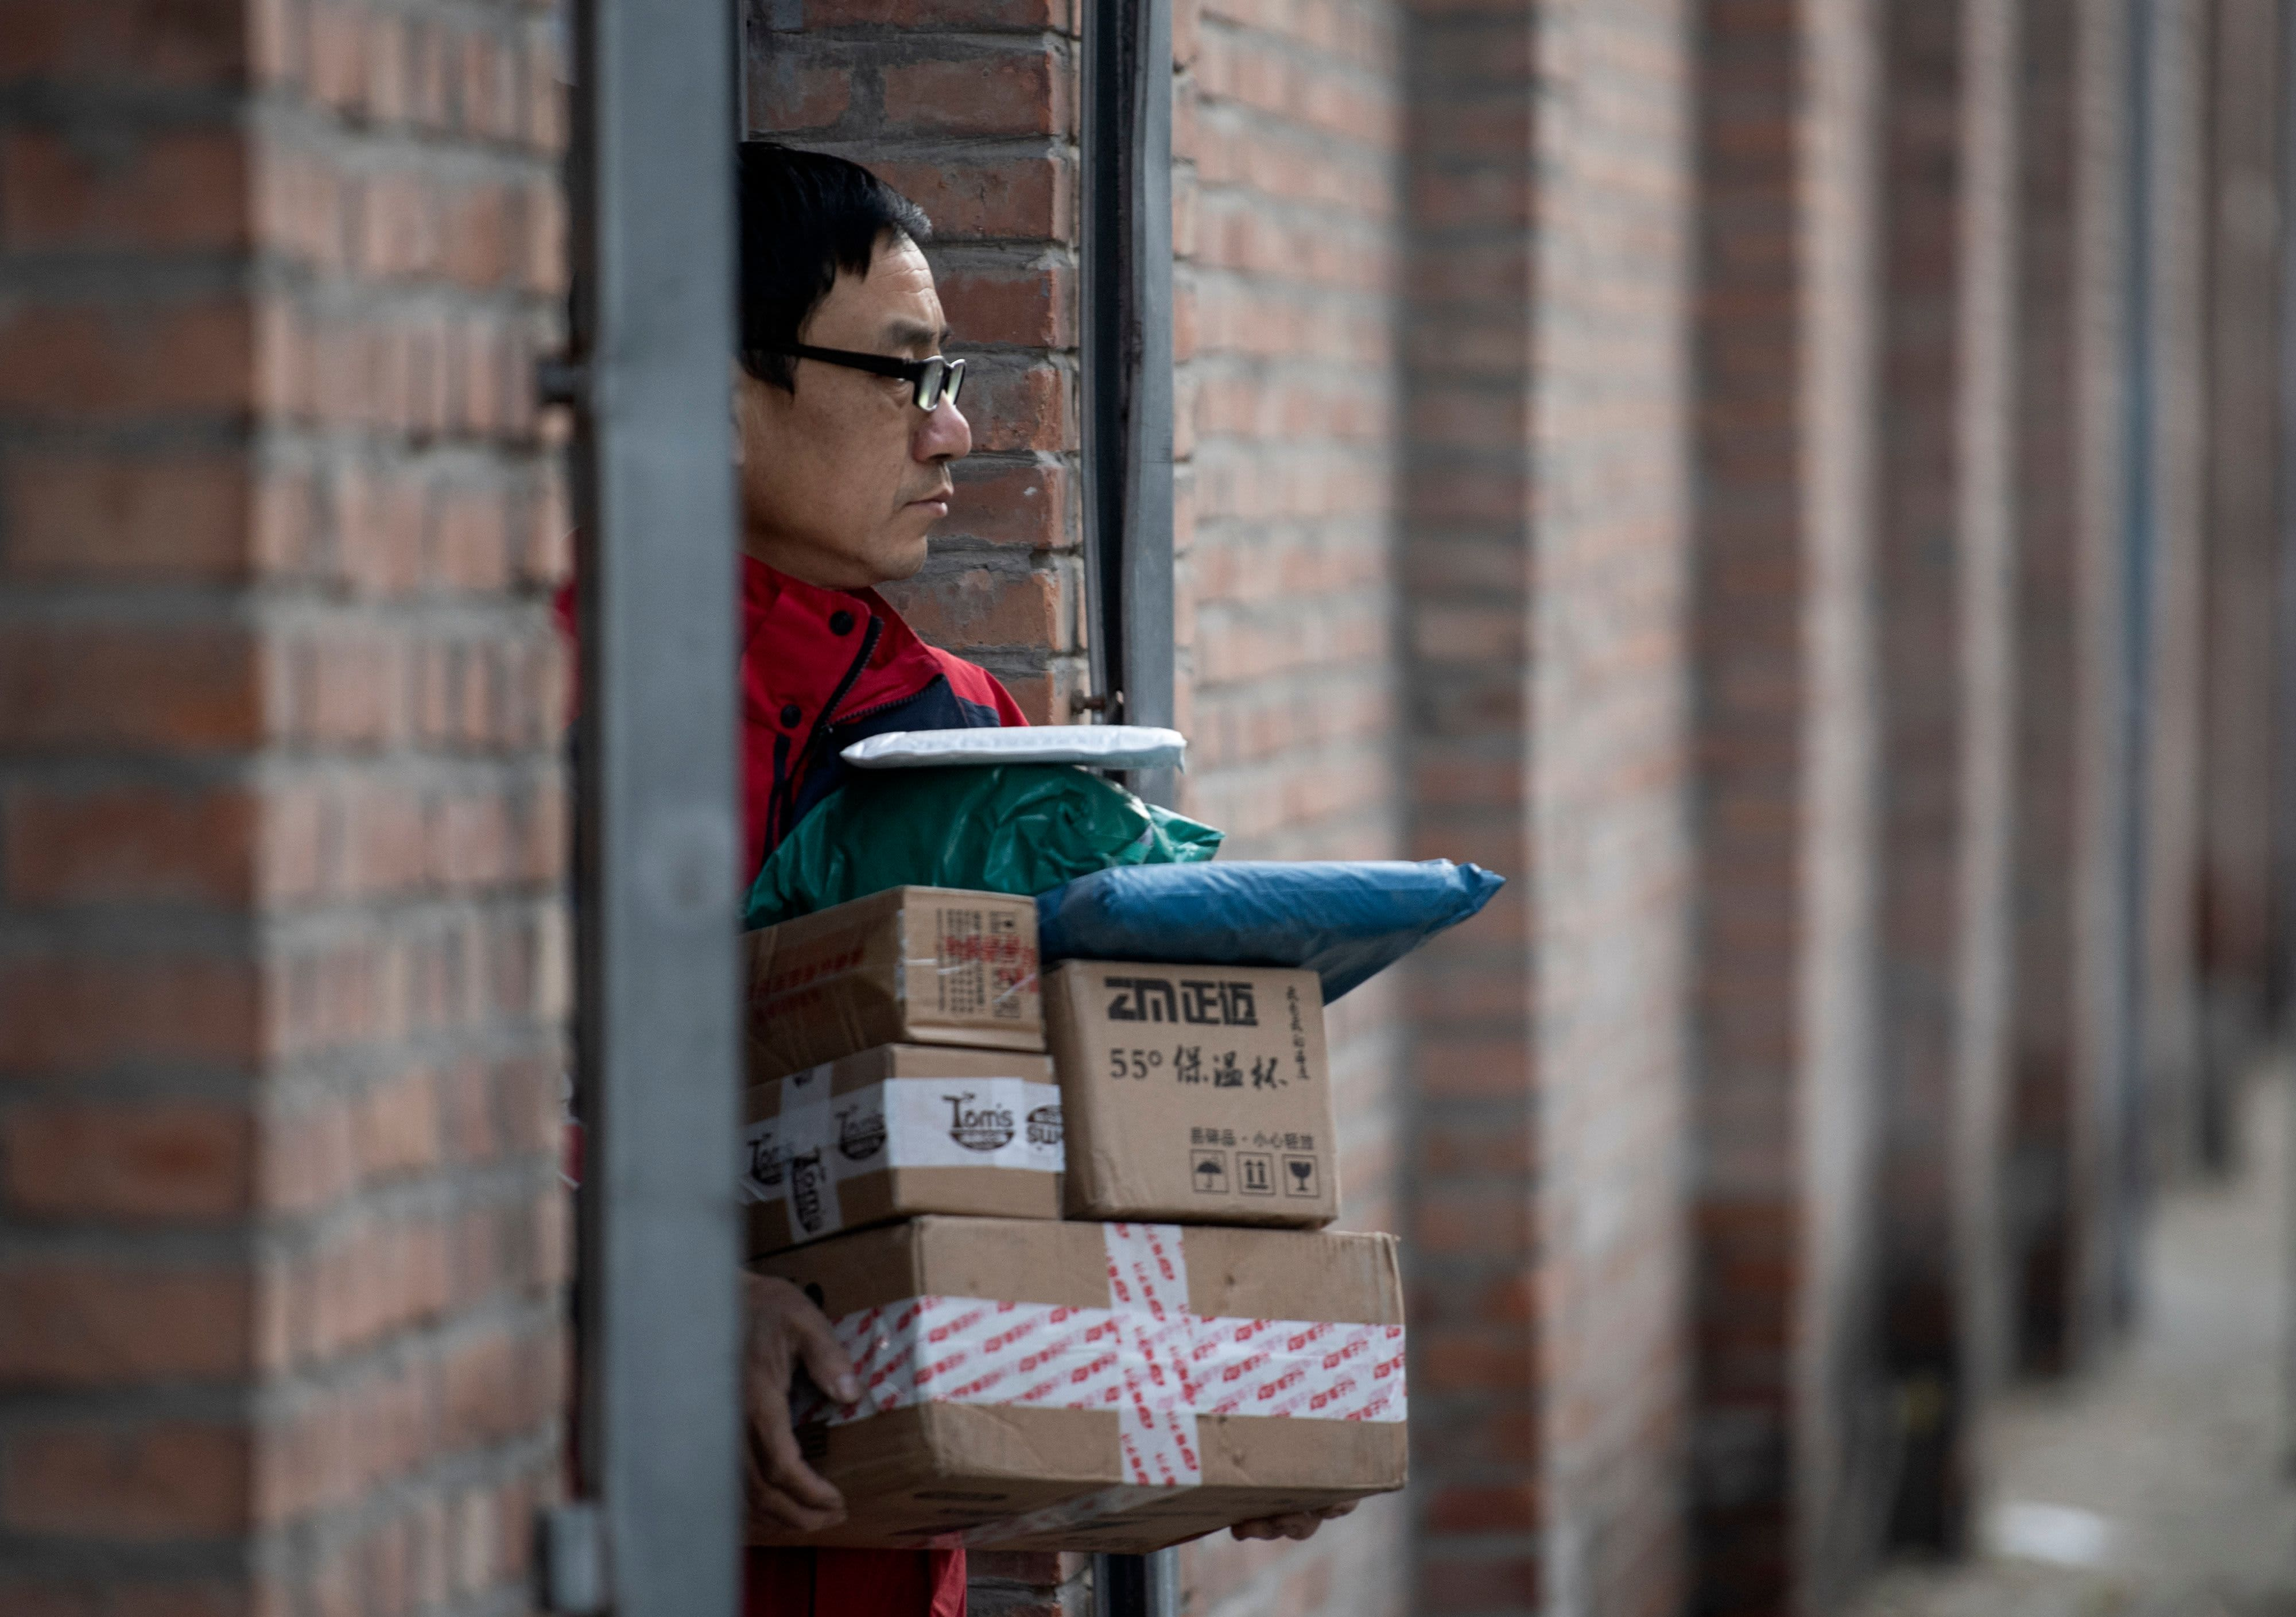 Singles Day started in China but now it's catching on in Southeast Asia's growing e-commerce market